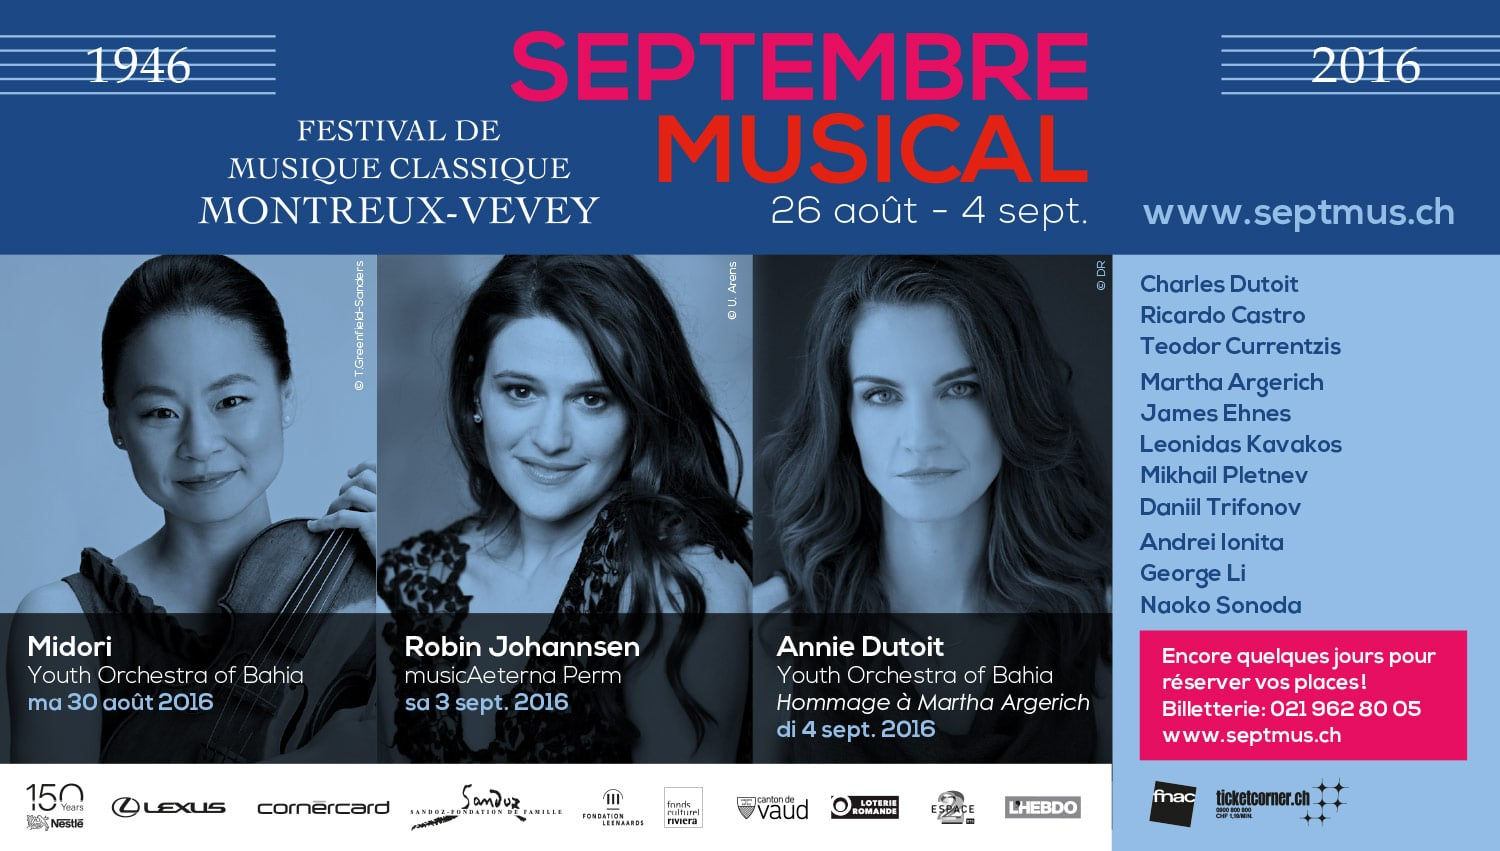 Septembre Musical - Annonces musiciennes